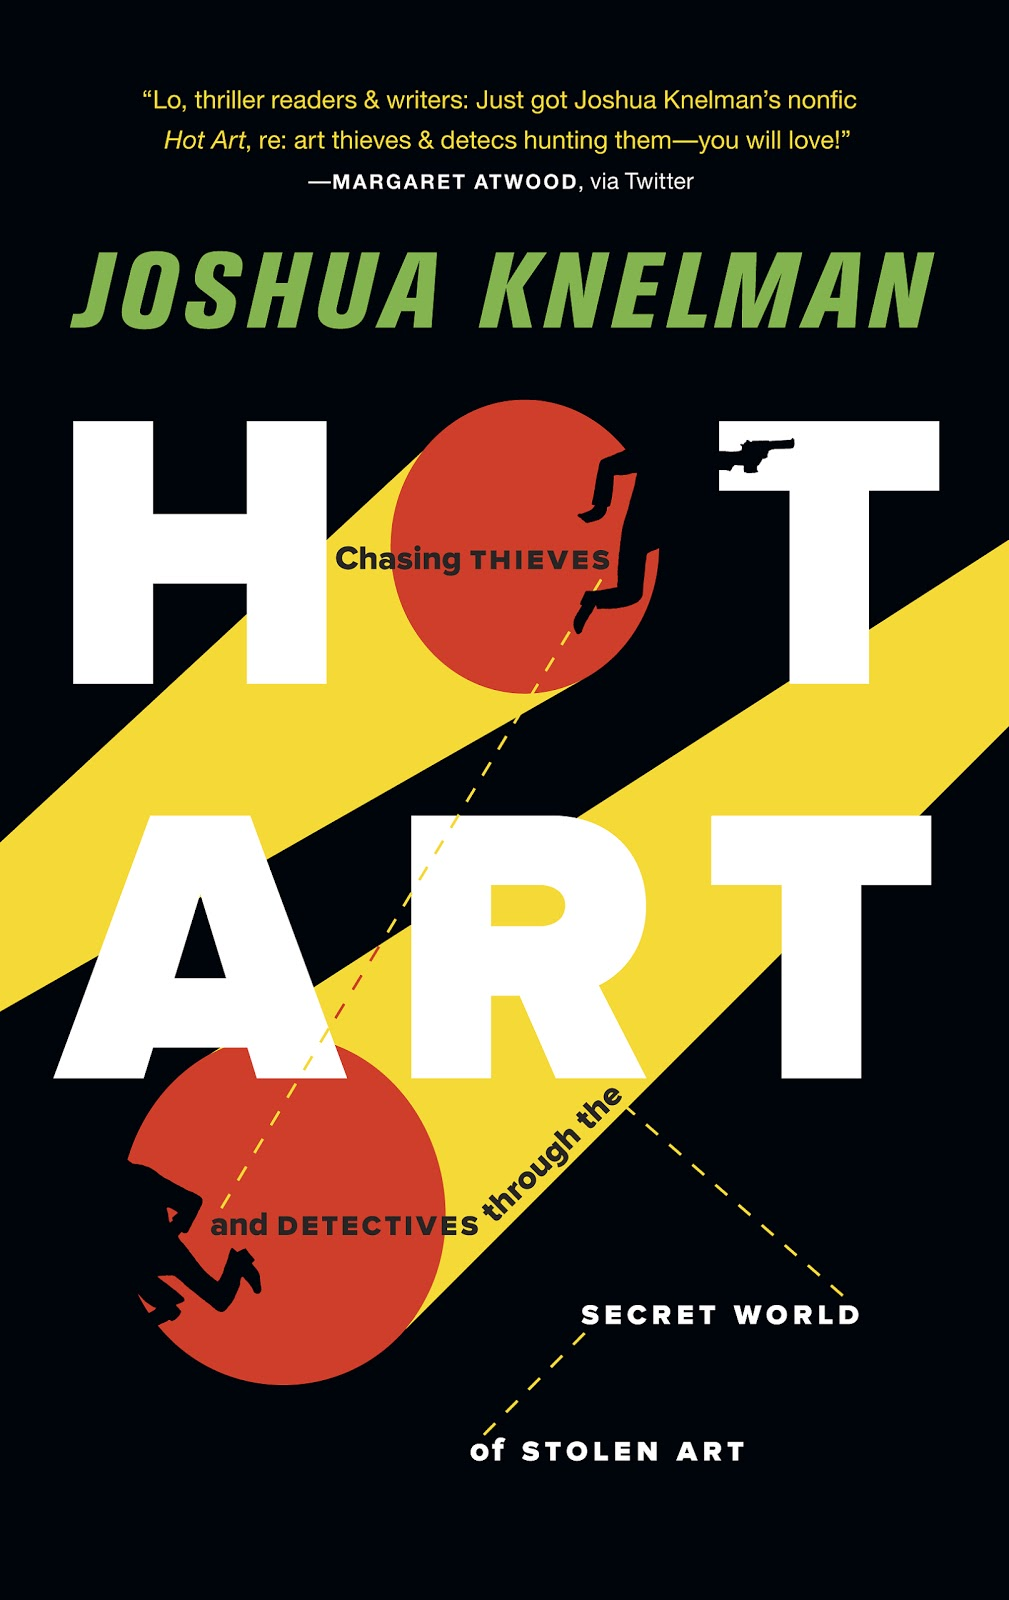 ARCAblog: Hot Art